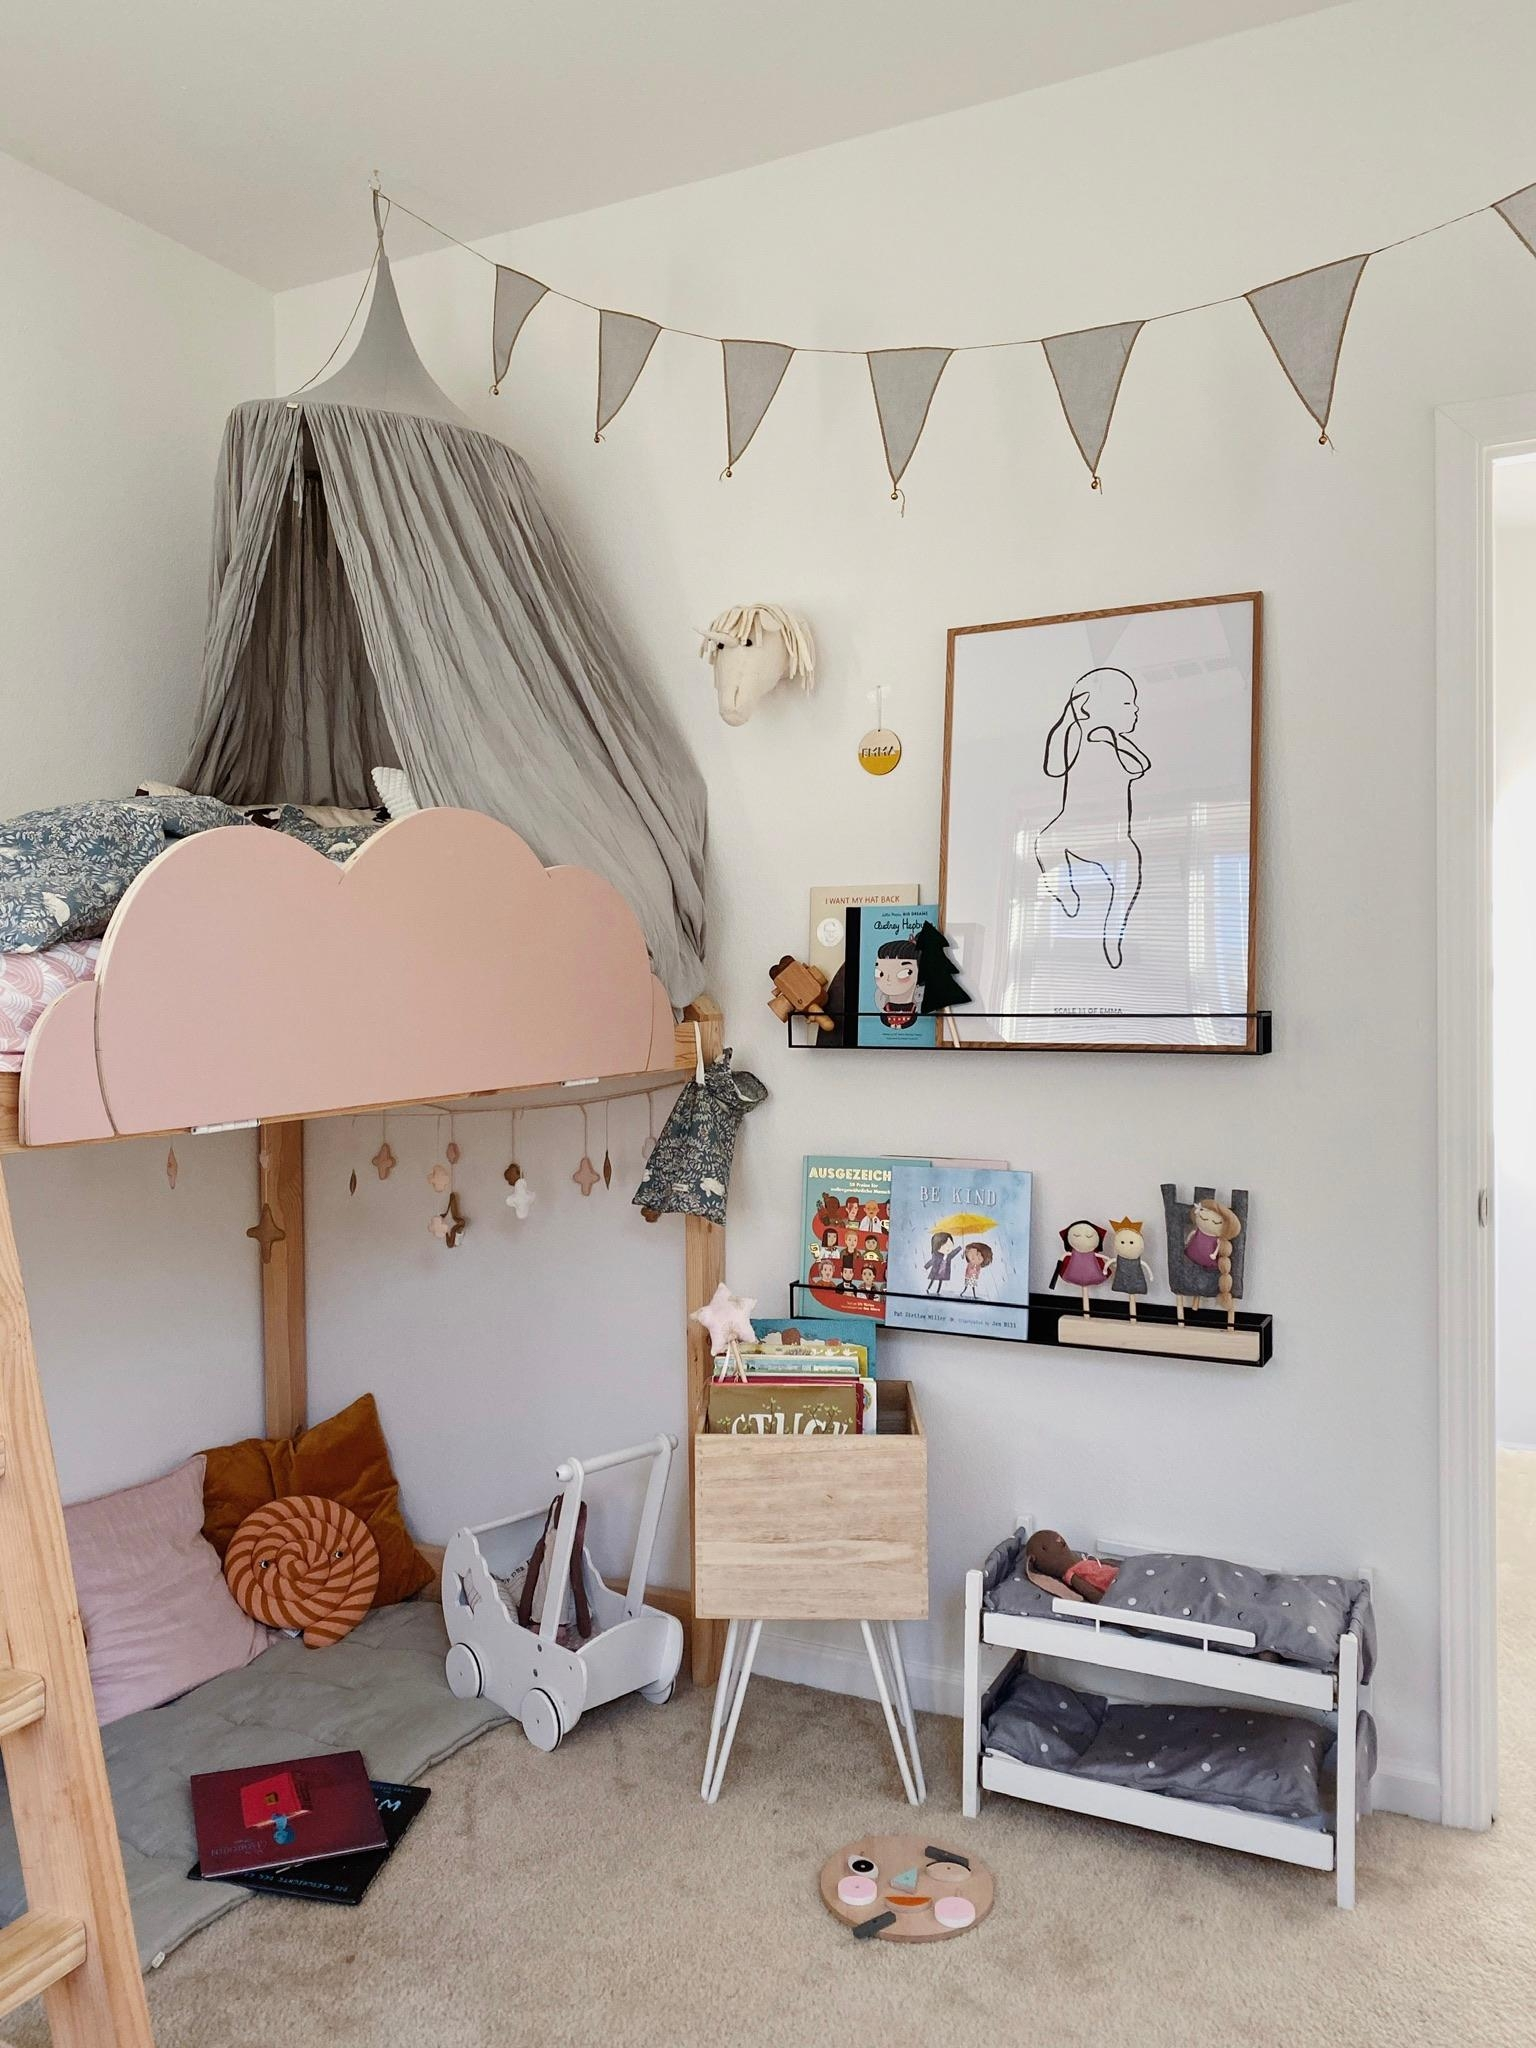 Cozy reading corner #kidsroom #decorforkids #hochbett #bücherregale